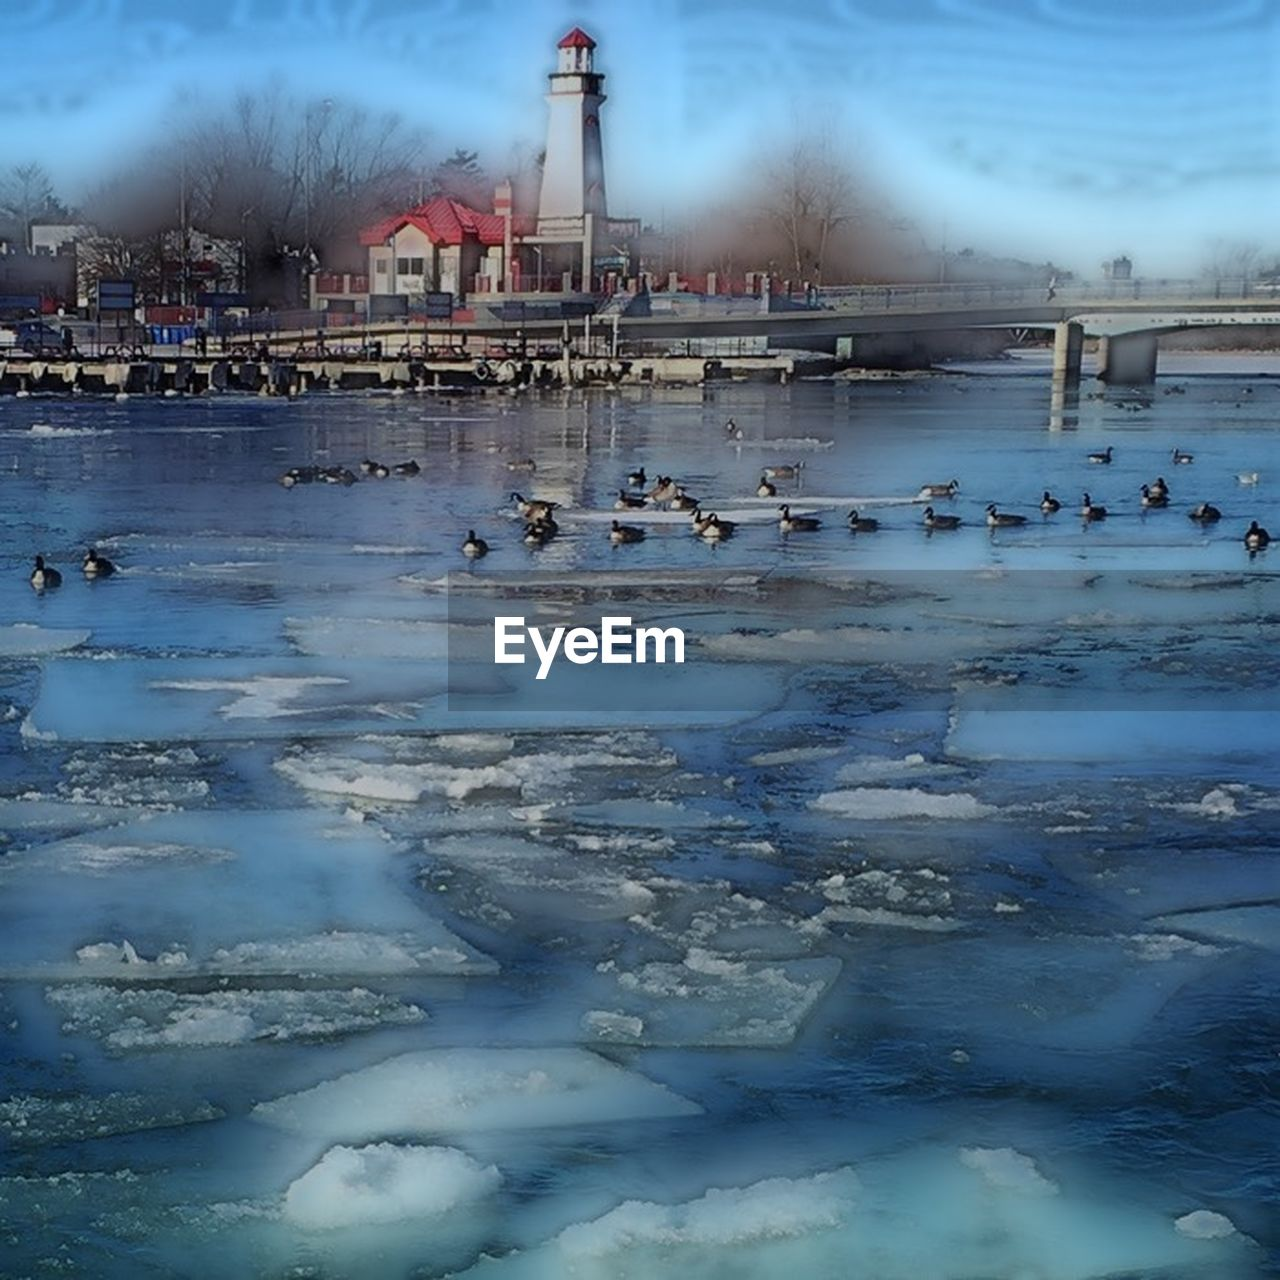 water, architecture, built structure, sky, cold temperature, day, travel destinations, building exterior, winter, outdoors, frozen, nature, cloud - sky, large group of animals, bird, no people, animals in the wild, animal themes, beauty in nature, city, ice rink